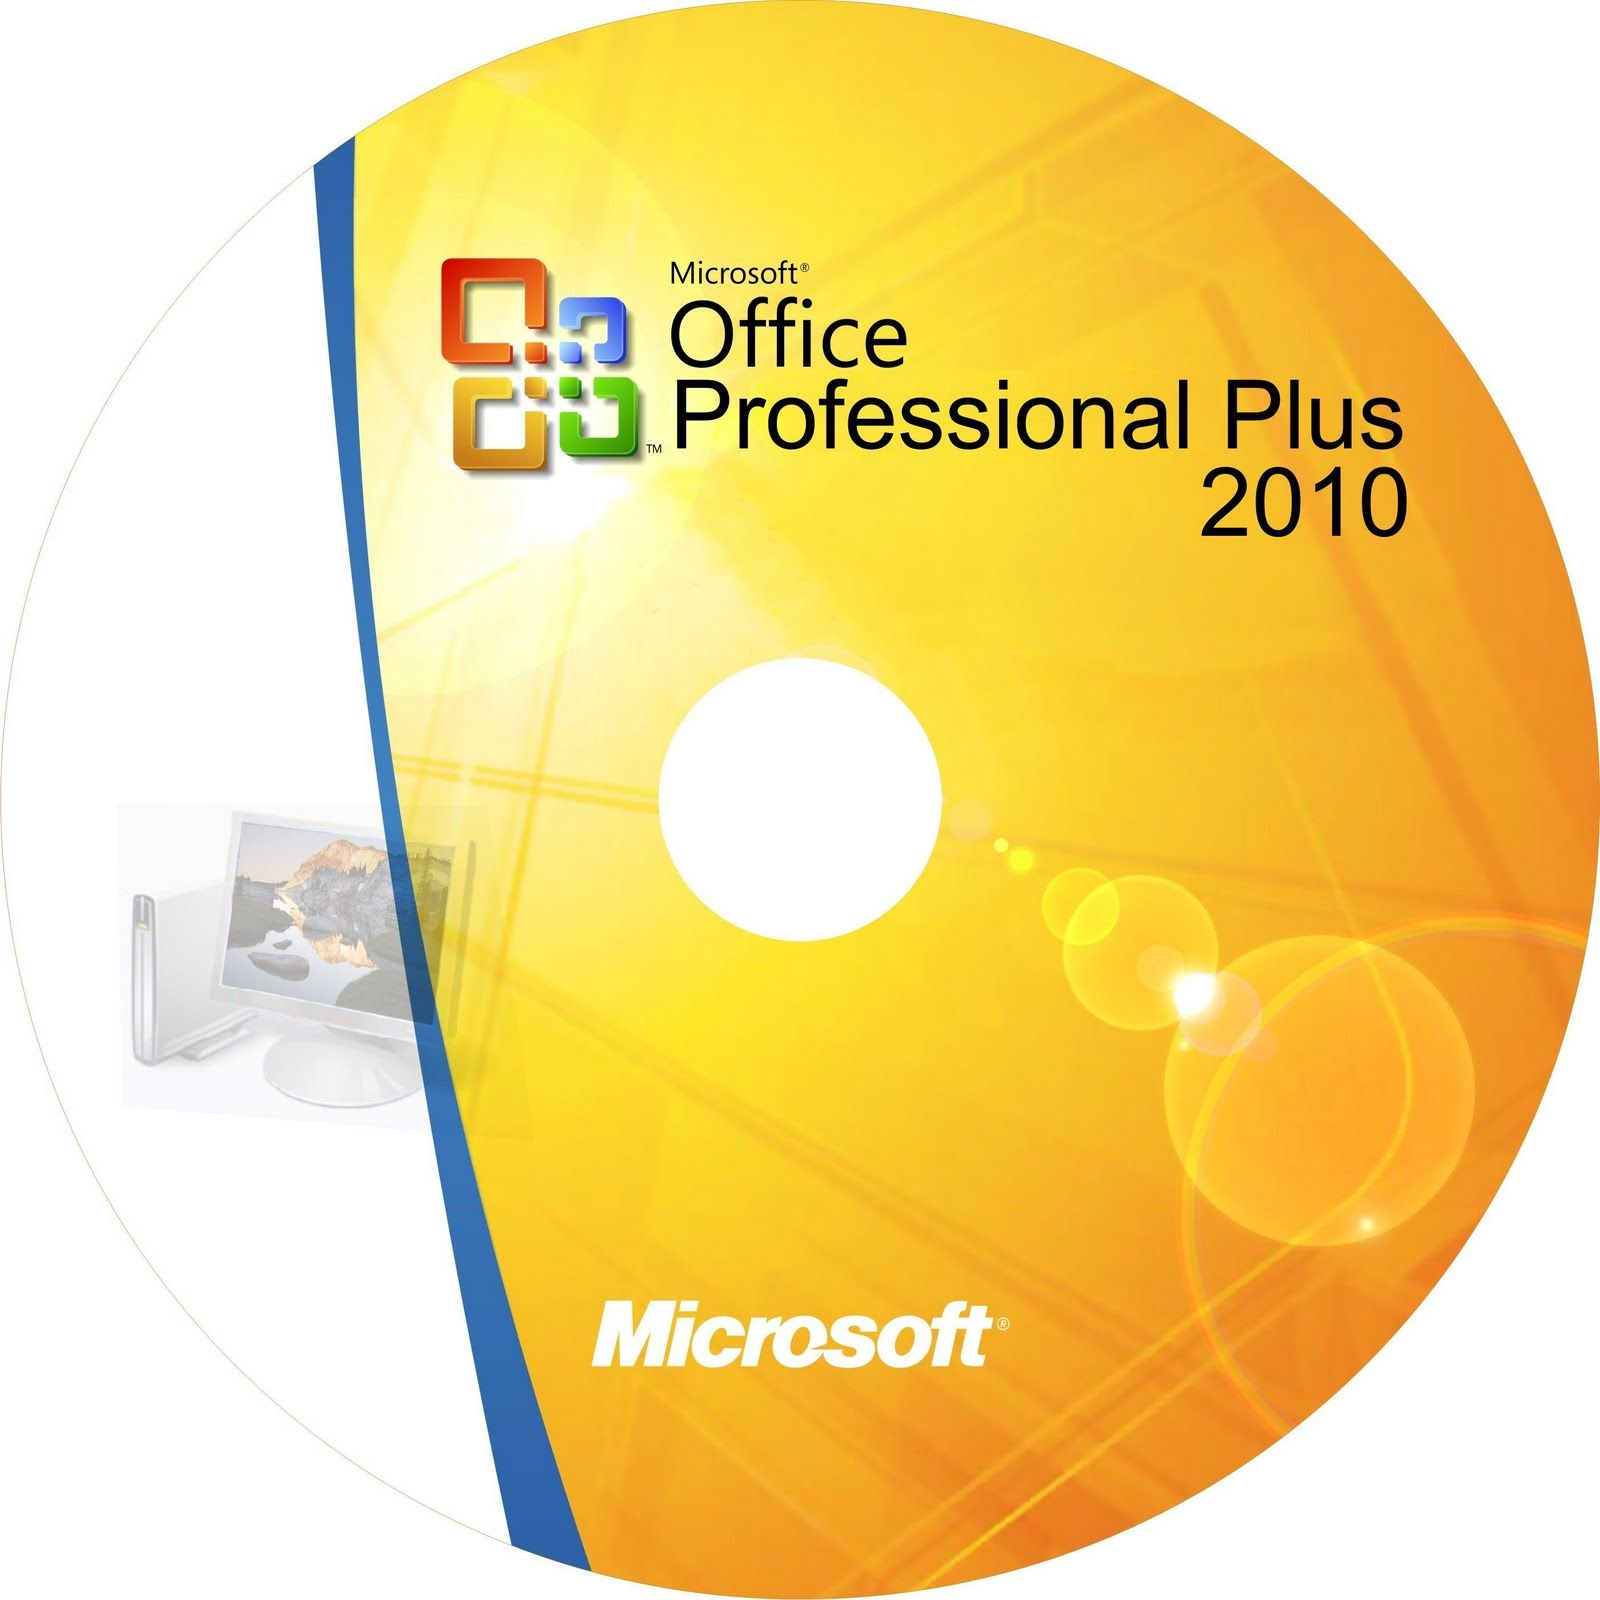 Computers/tablets & Networking Glorious Microsoft Office 2010 Professional Plus Ms Office 2010 Product Key Download Link